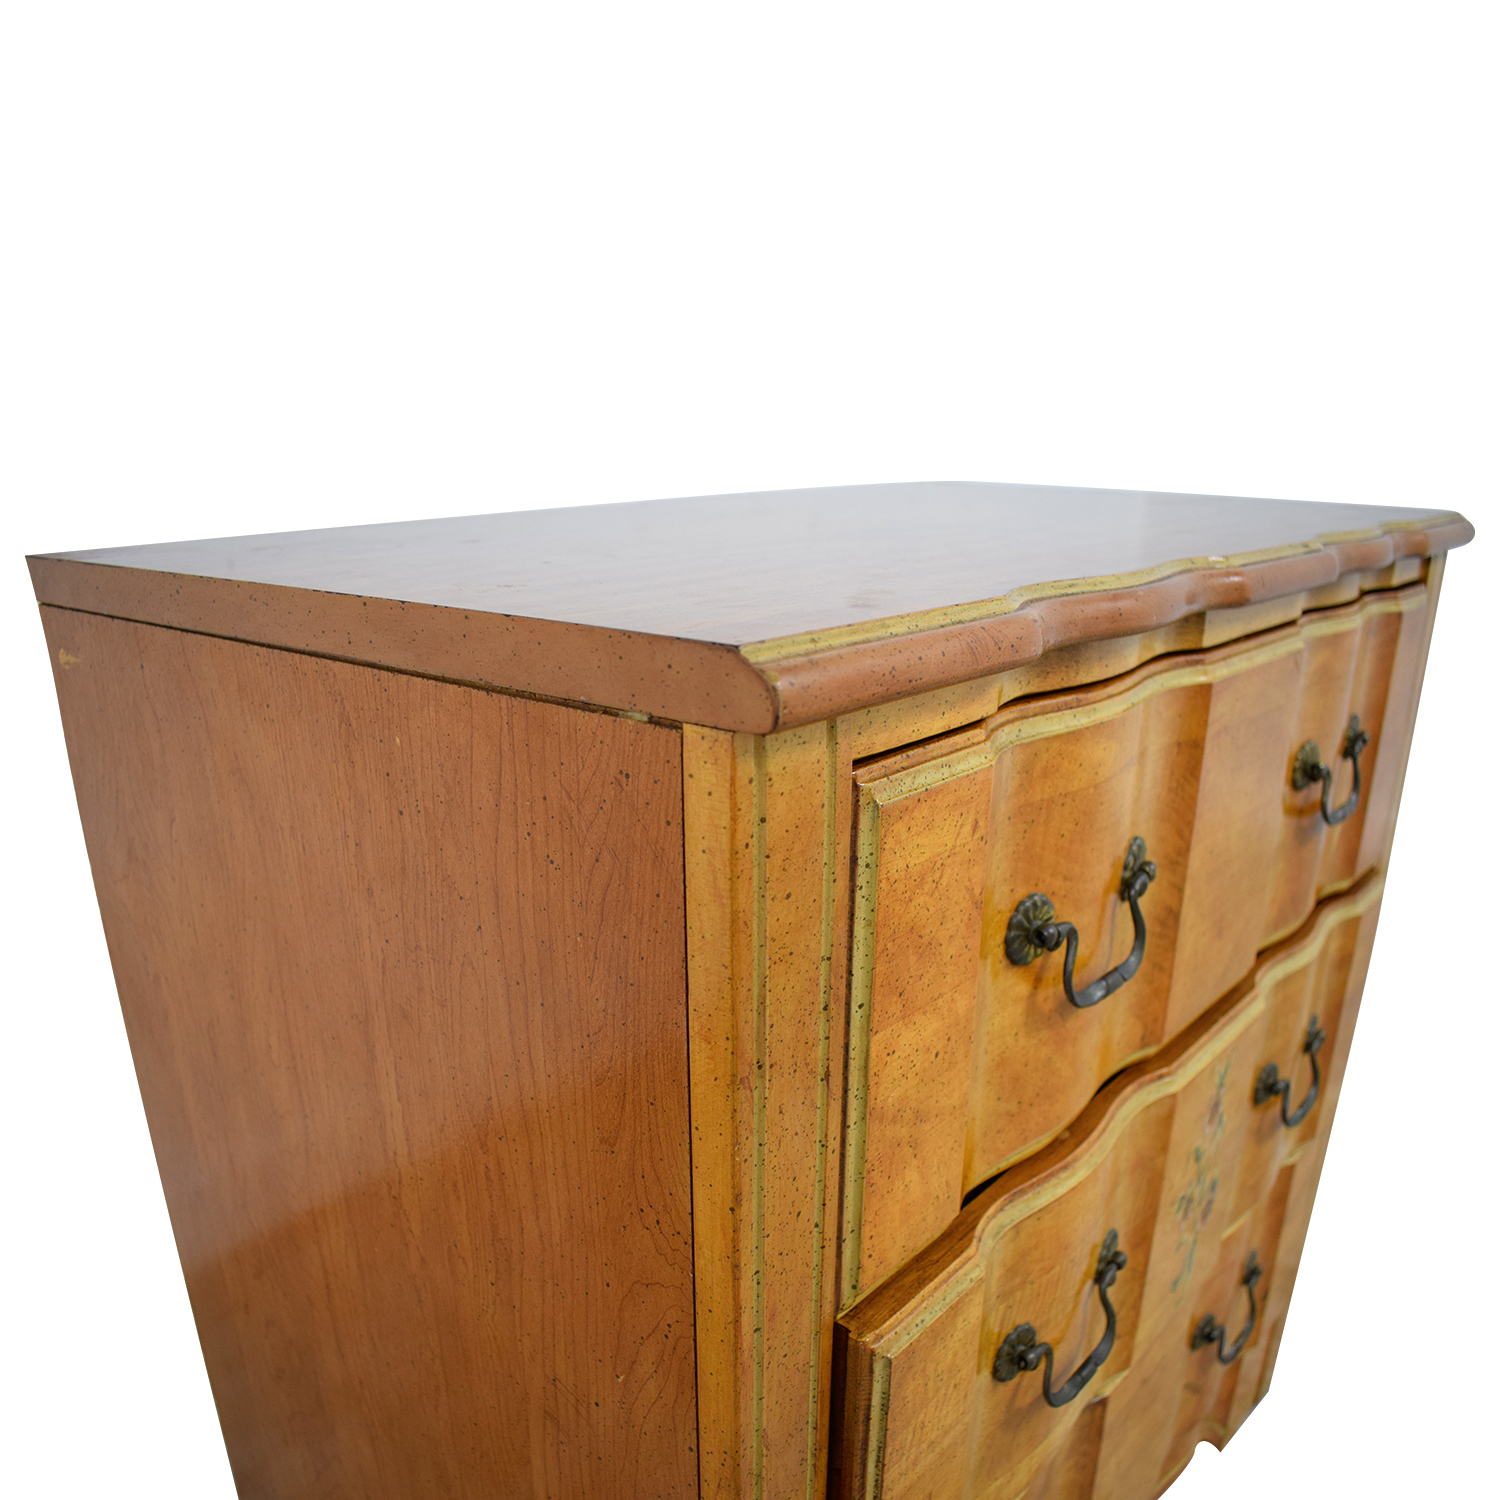 Vintage Painted Three-Drawer Chest of Drawers for sale